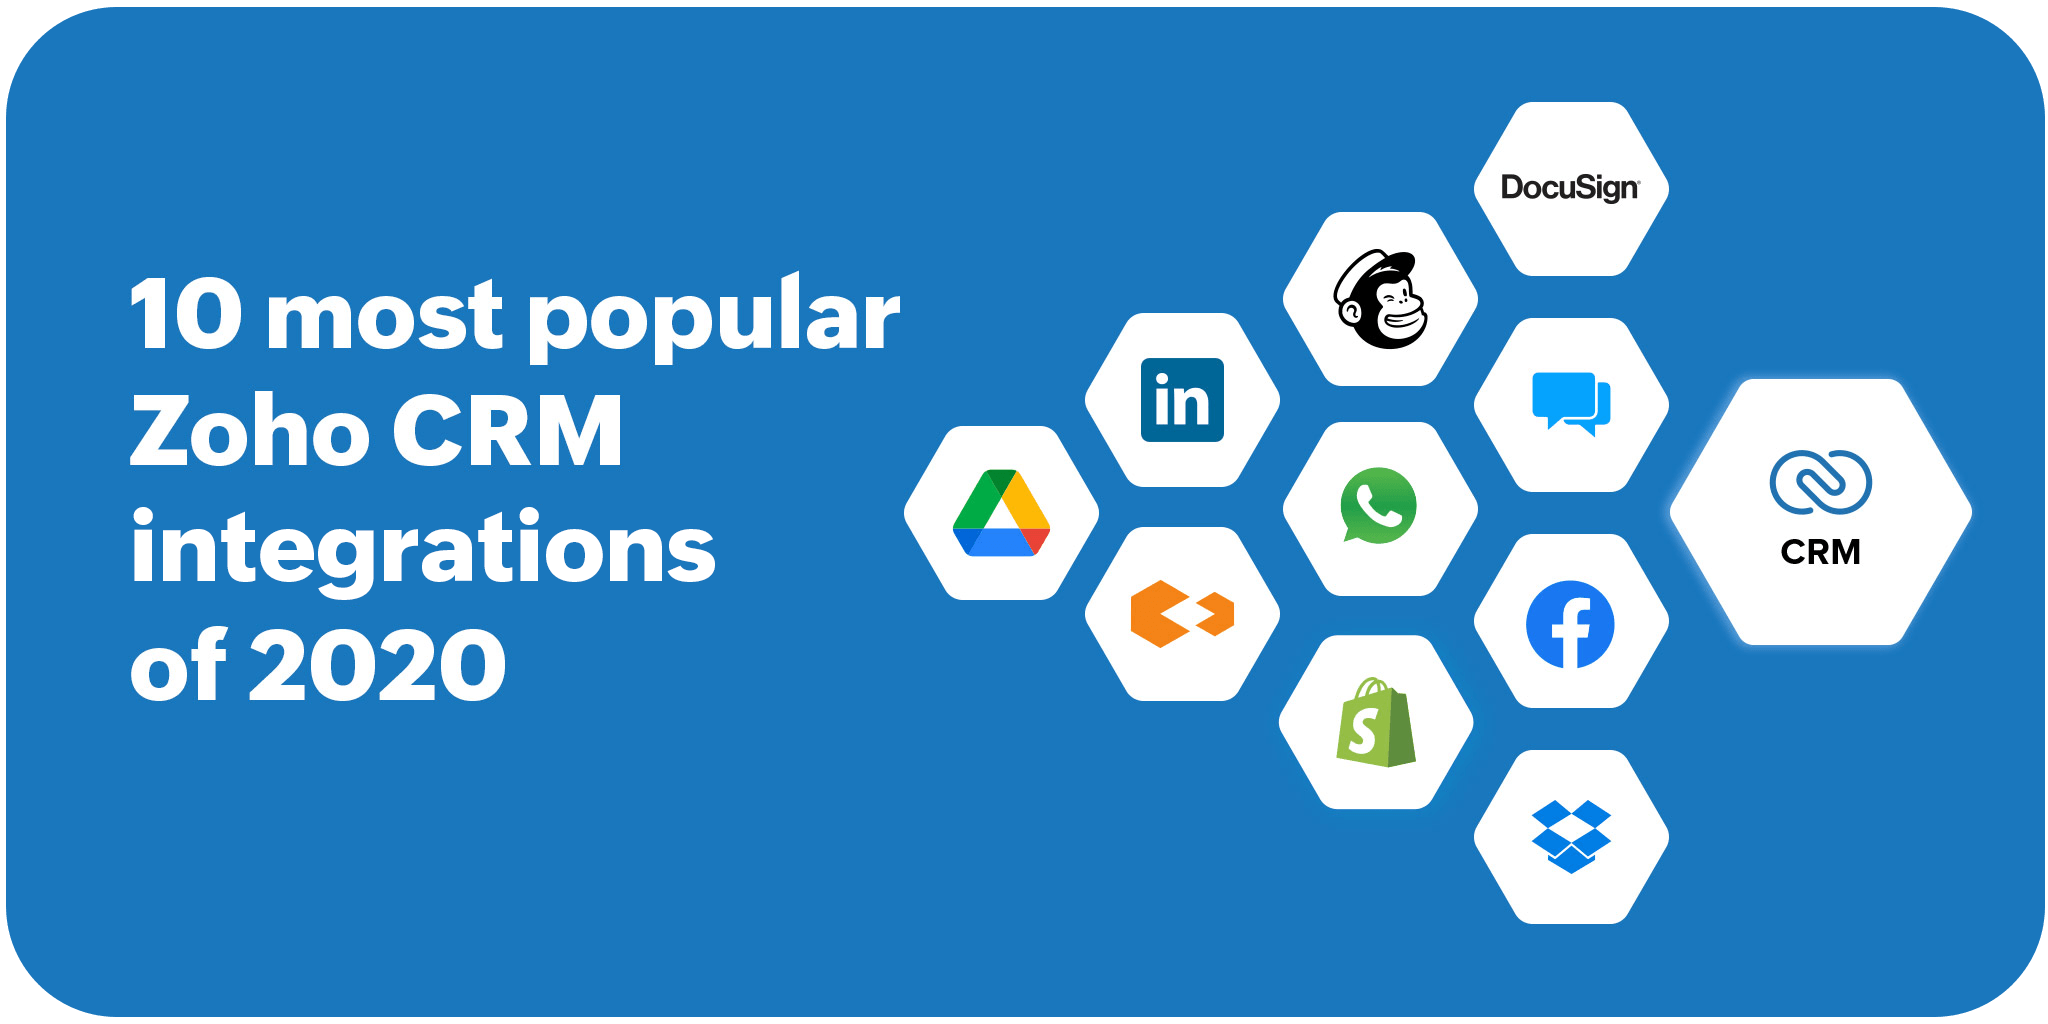 Most popular Zoho CRM integrations of 2020